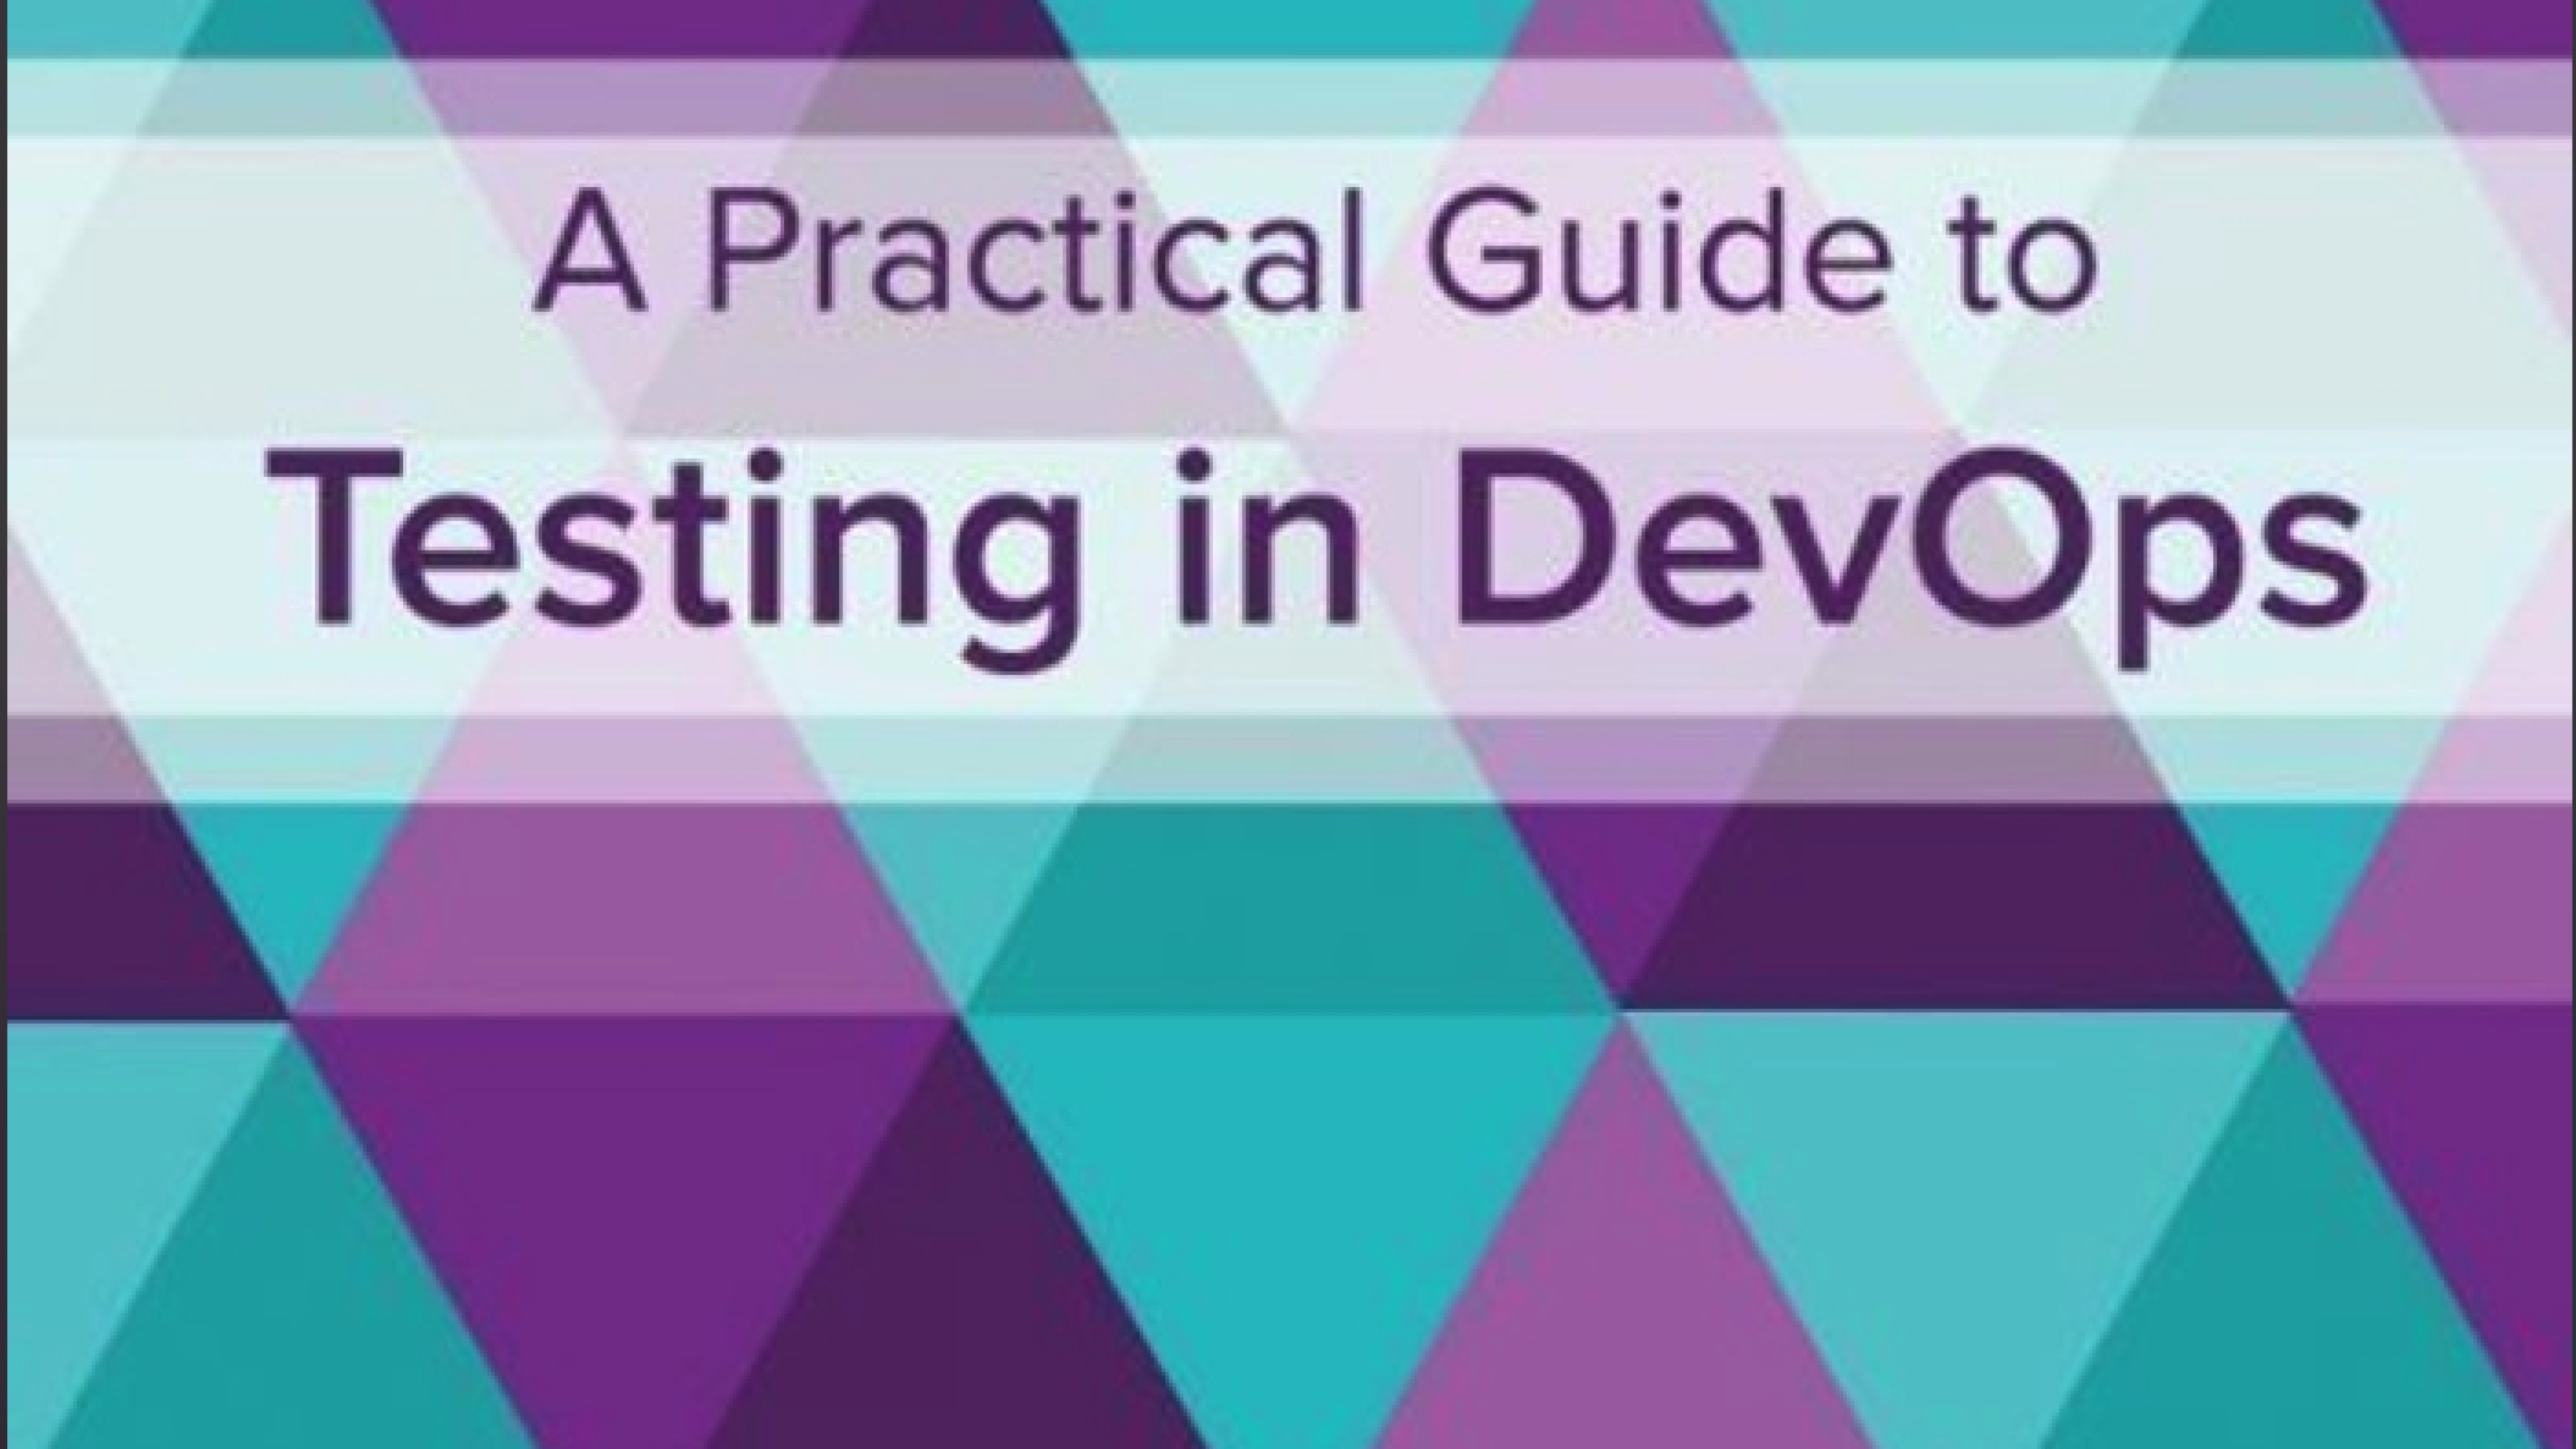 A Practical Guide to Testing in DevOps - Katrina Clokie